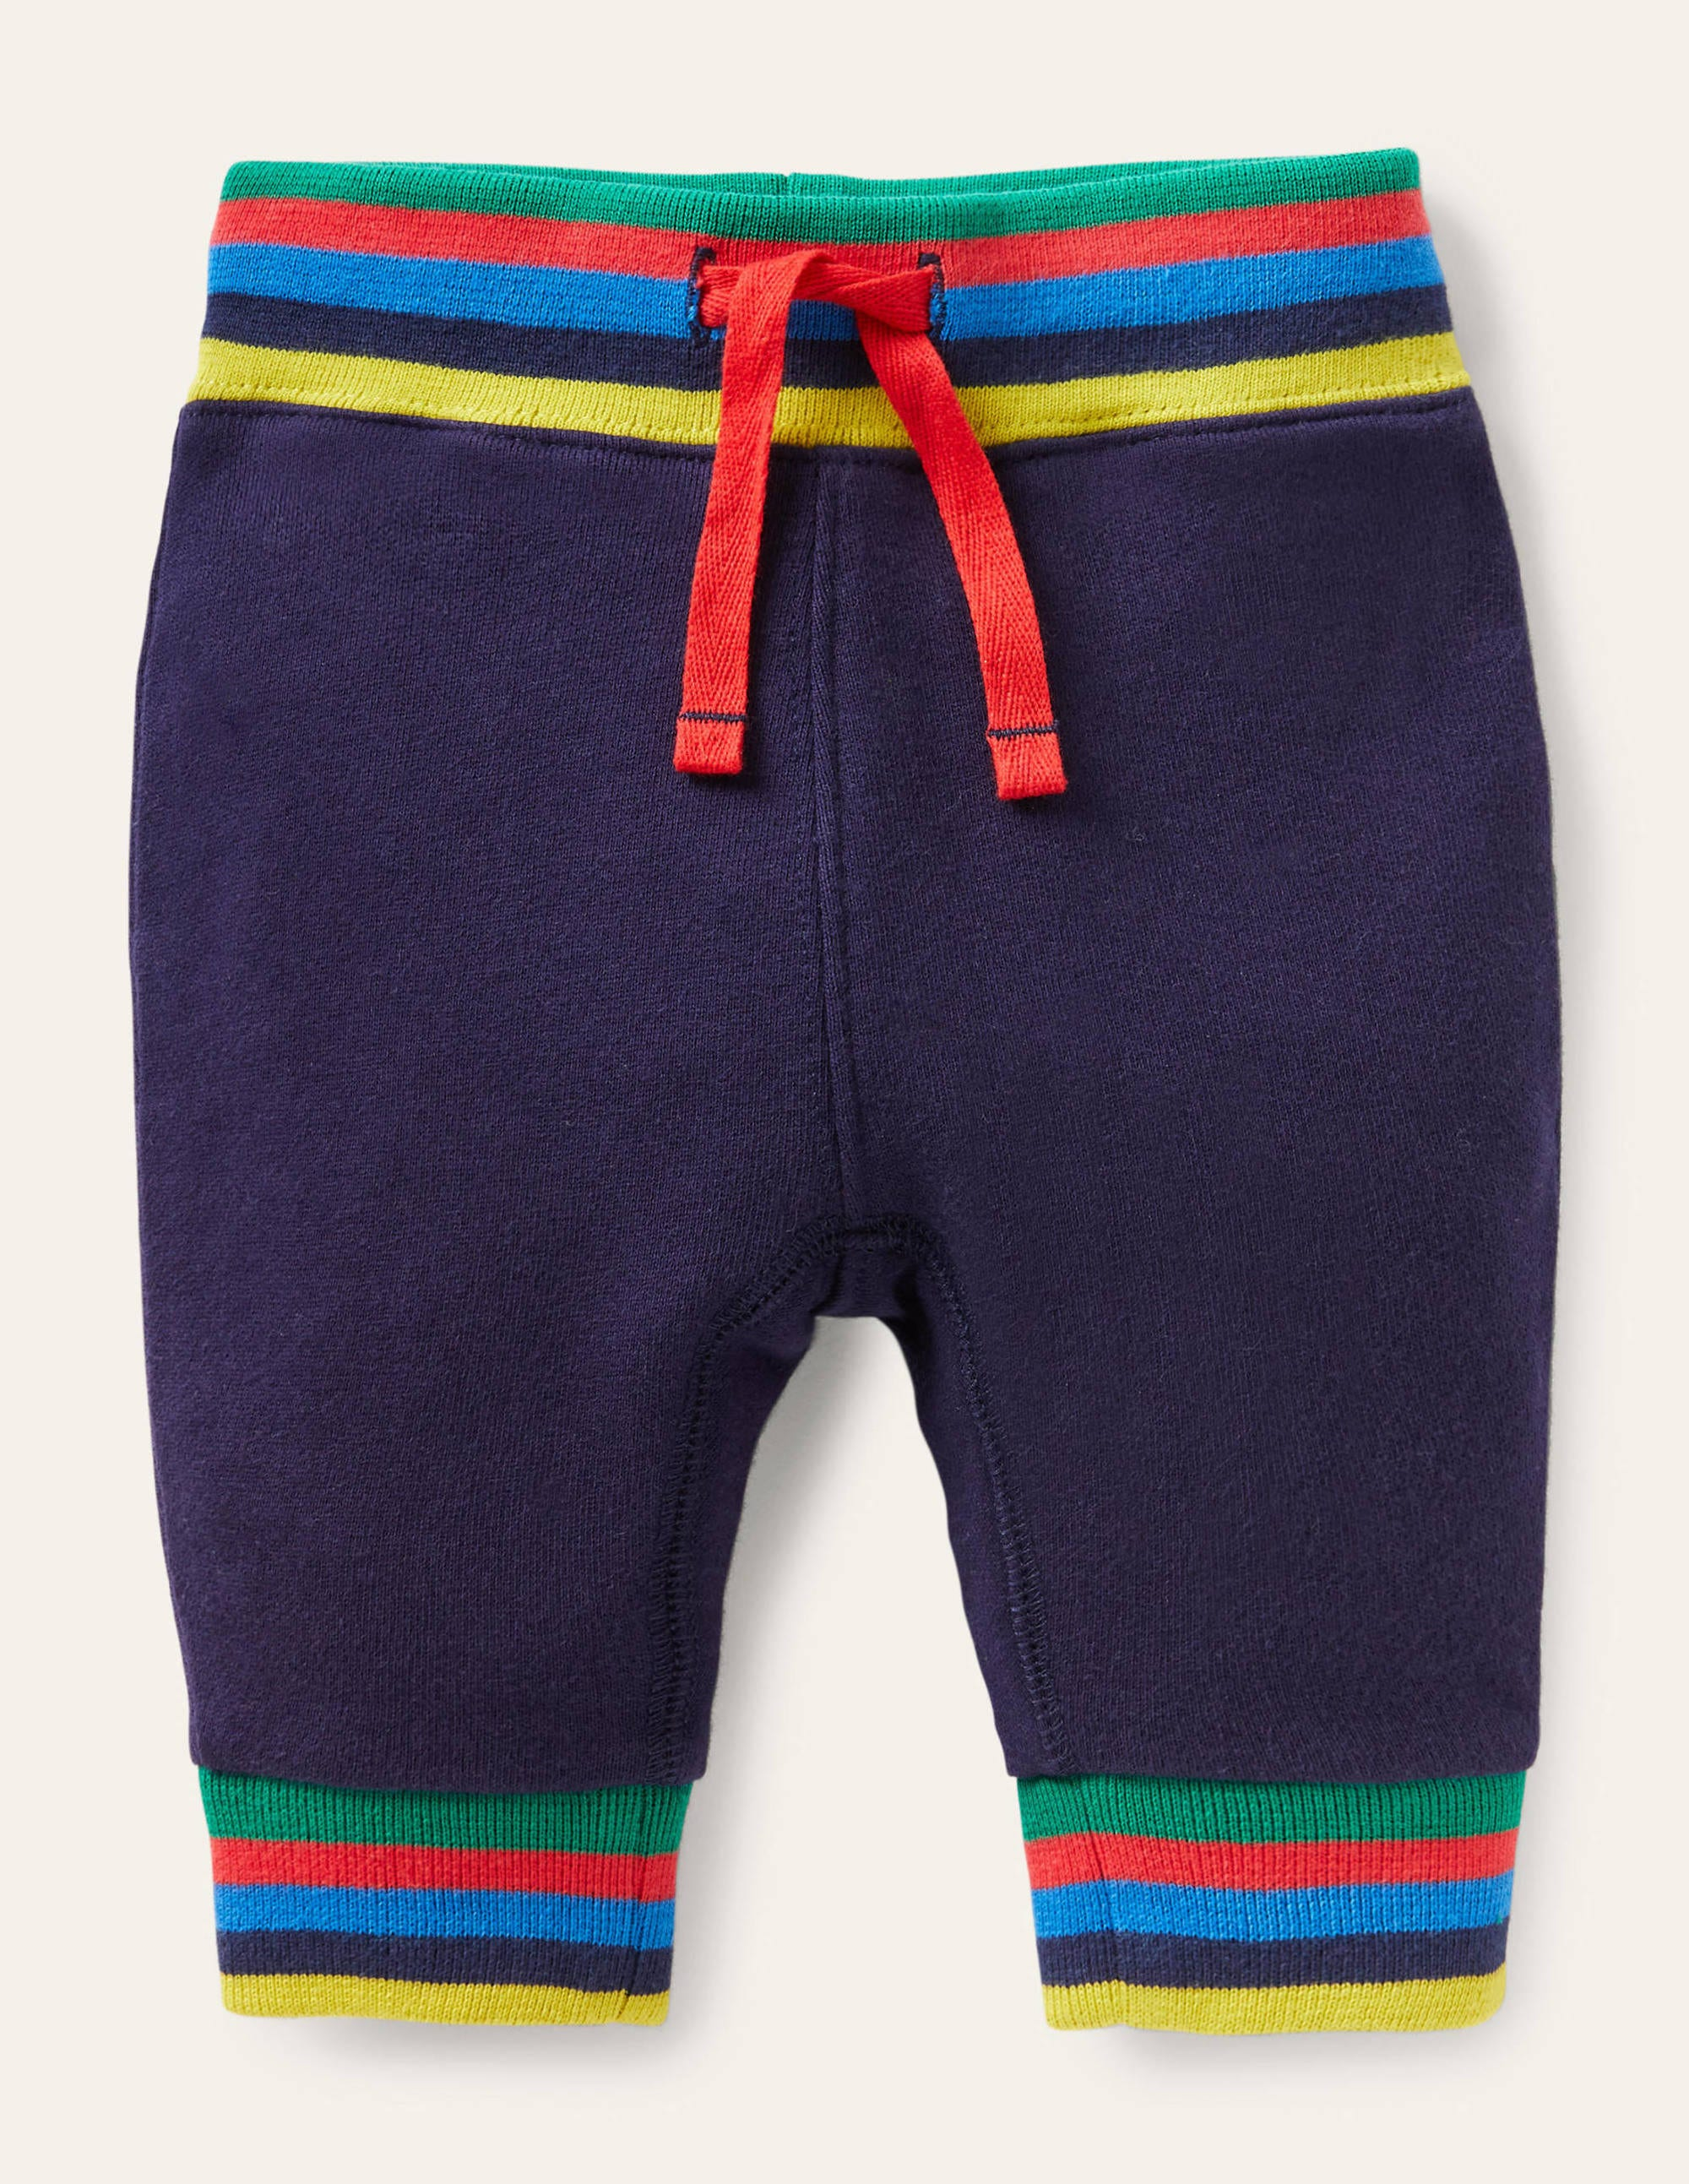 Boden Rainbow Rib Jersey Bottoms - Starboard Blue